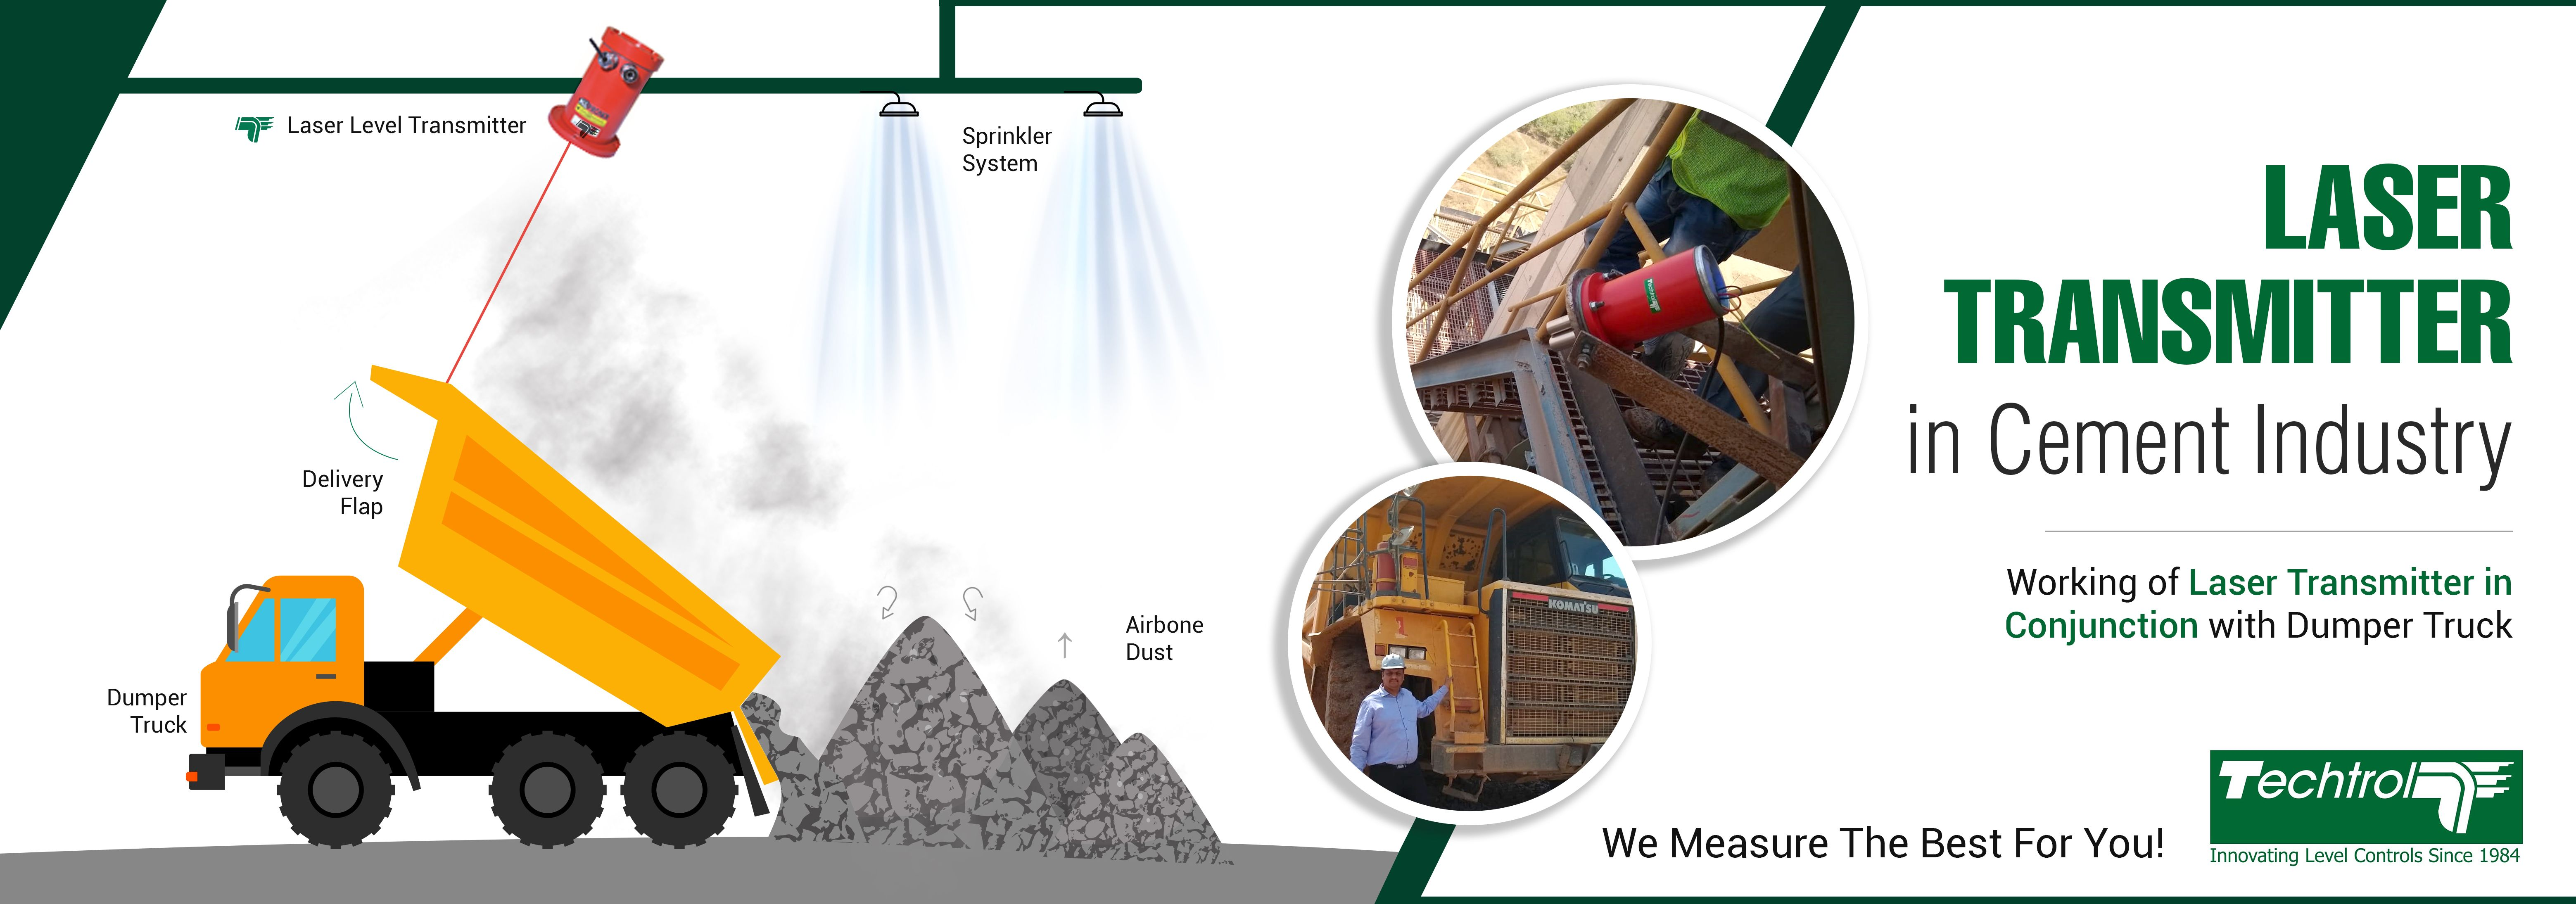 Successful Installation of Laser Transmitter in Cement Industry